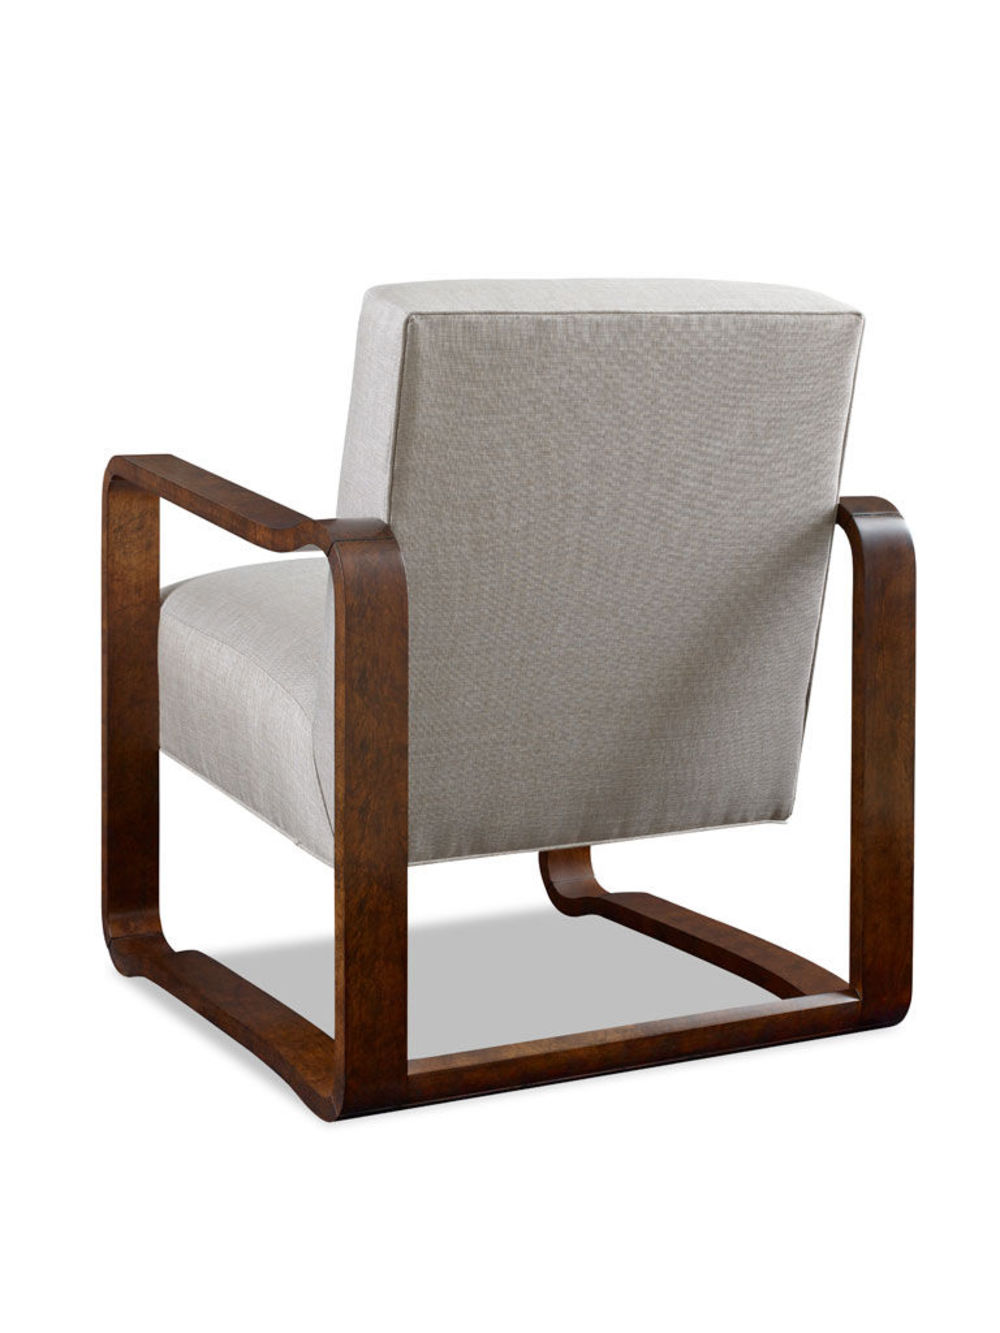 Chaddock - Harlow Lounge Chair